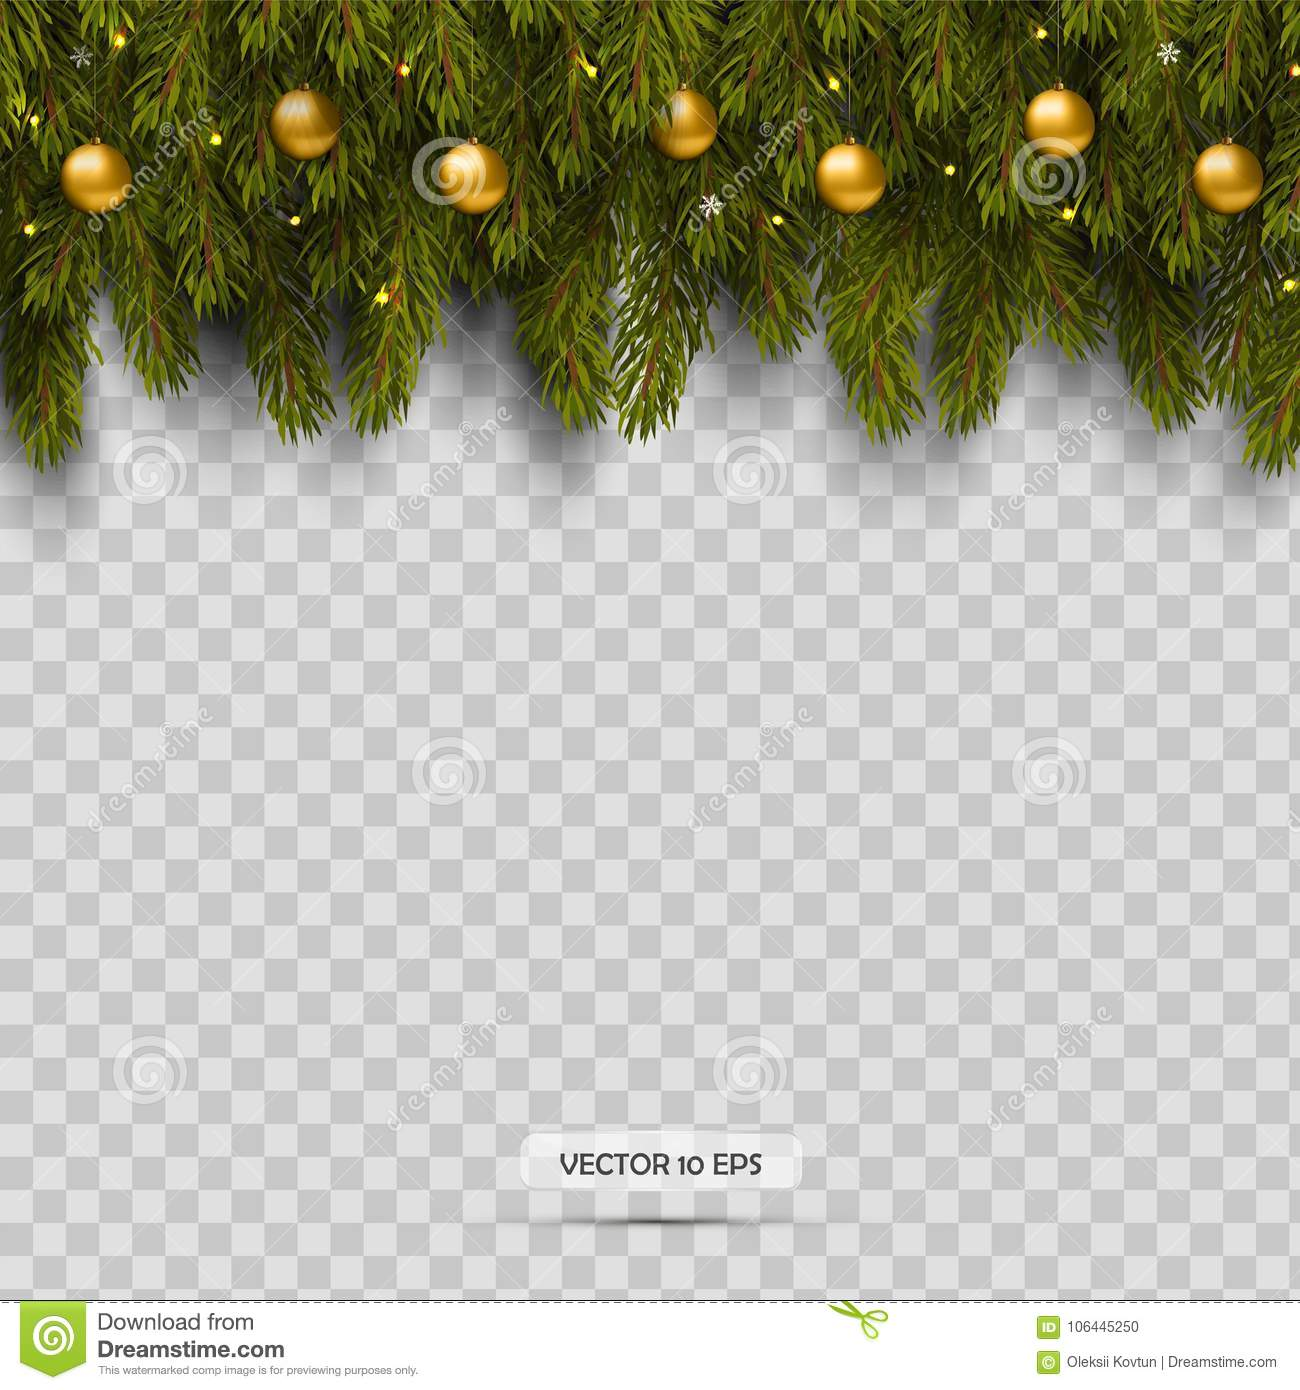 Border With Christmas Tree Branches And Ornaments With Balls